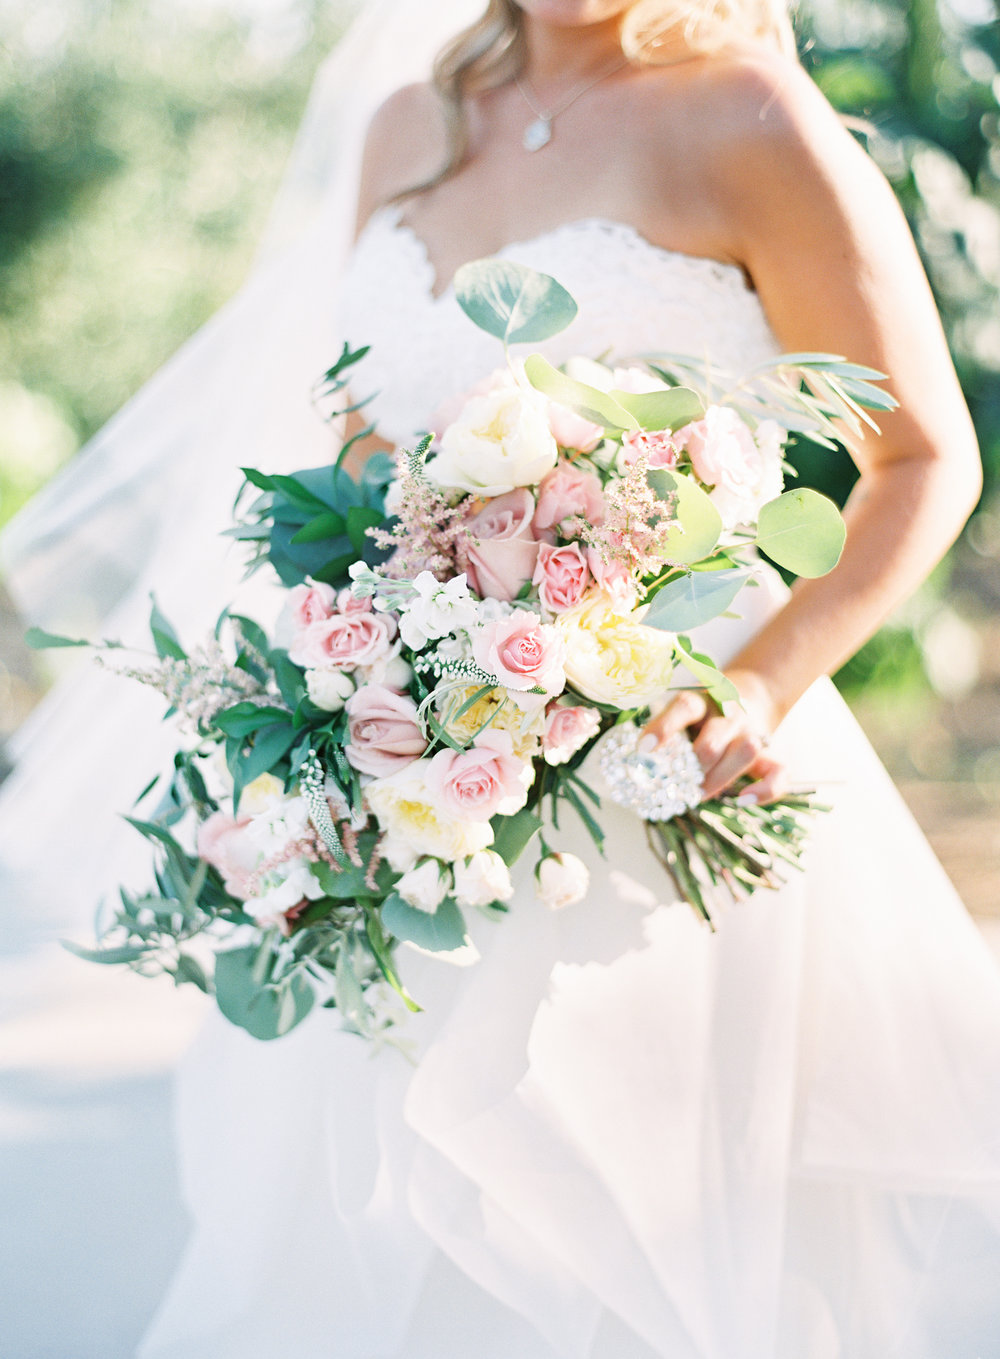 AllieGwinn_Wedding_WhiskersandWillow_082.jpg